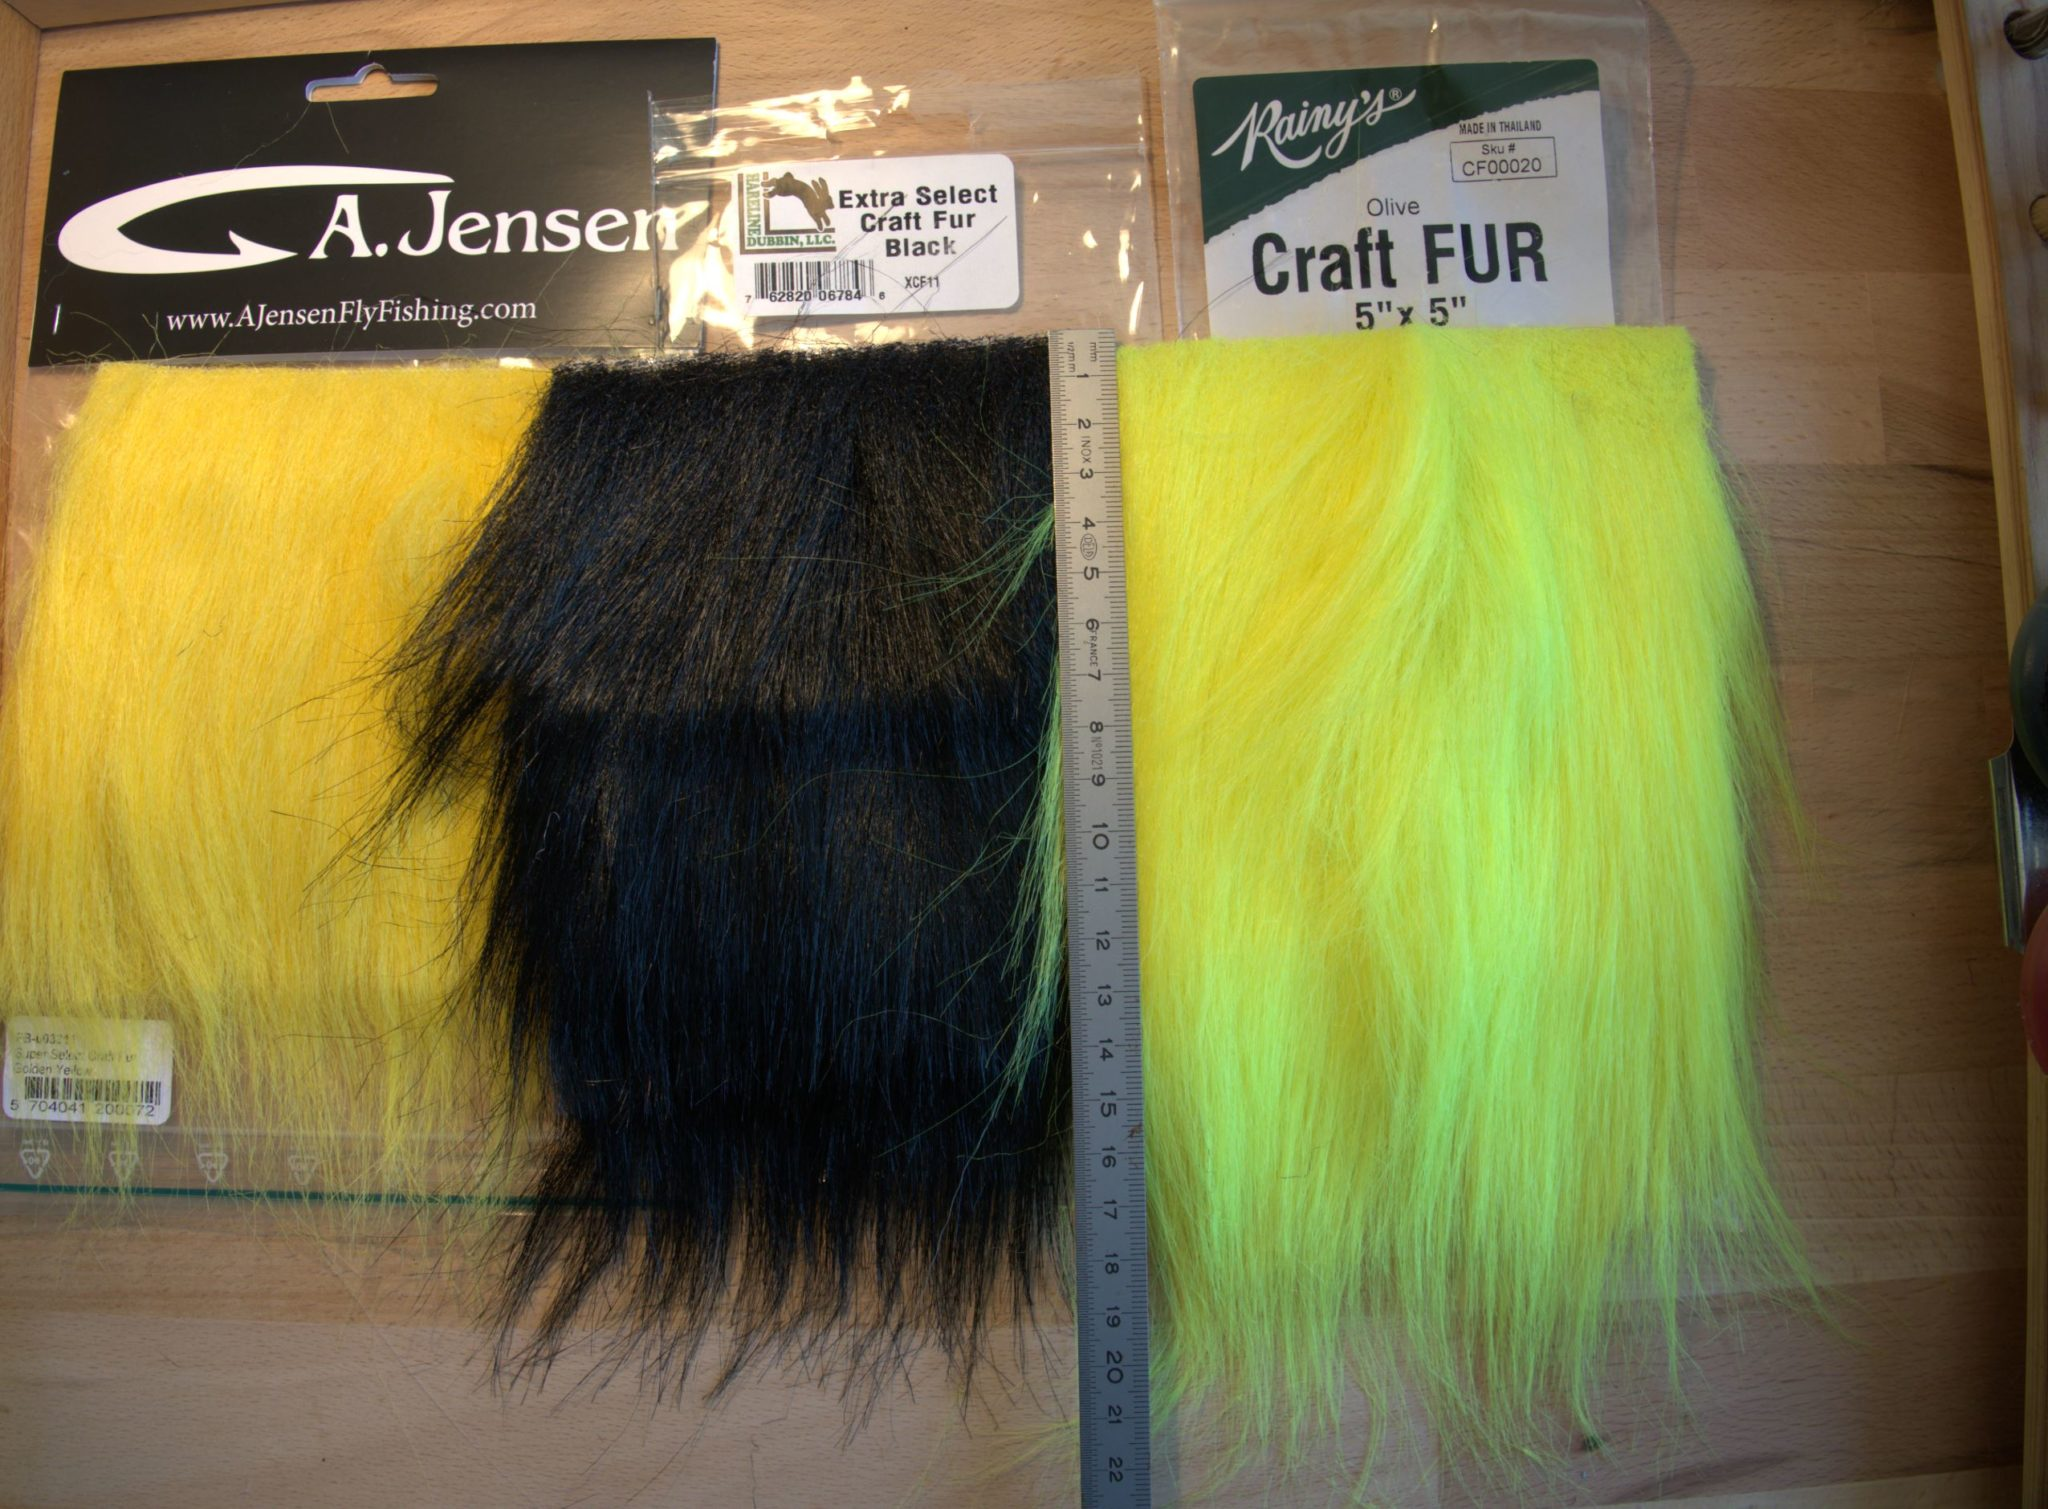 craft fur 2 fly tying flytying mouche eclosion fur poil saumon salmon seatrout truite de mer